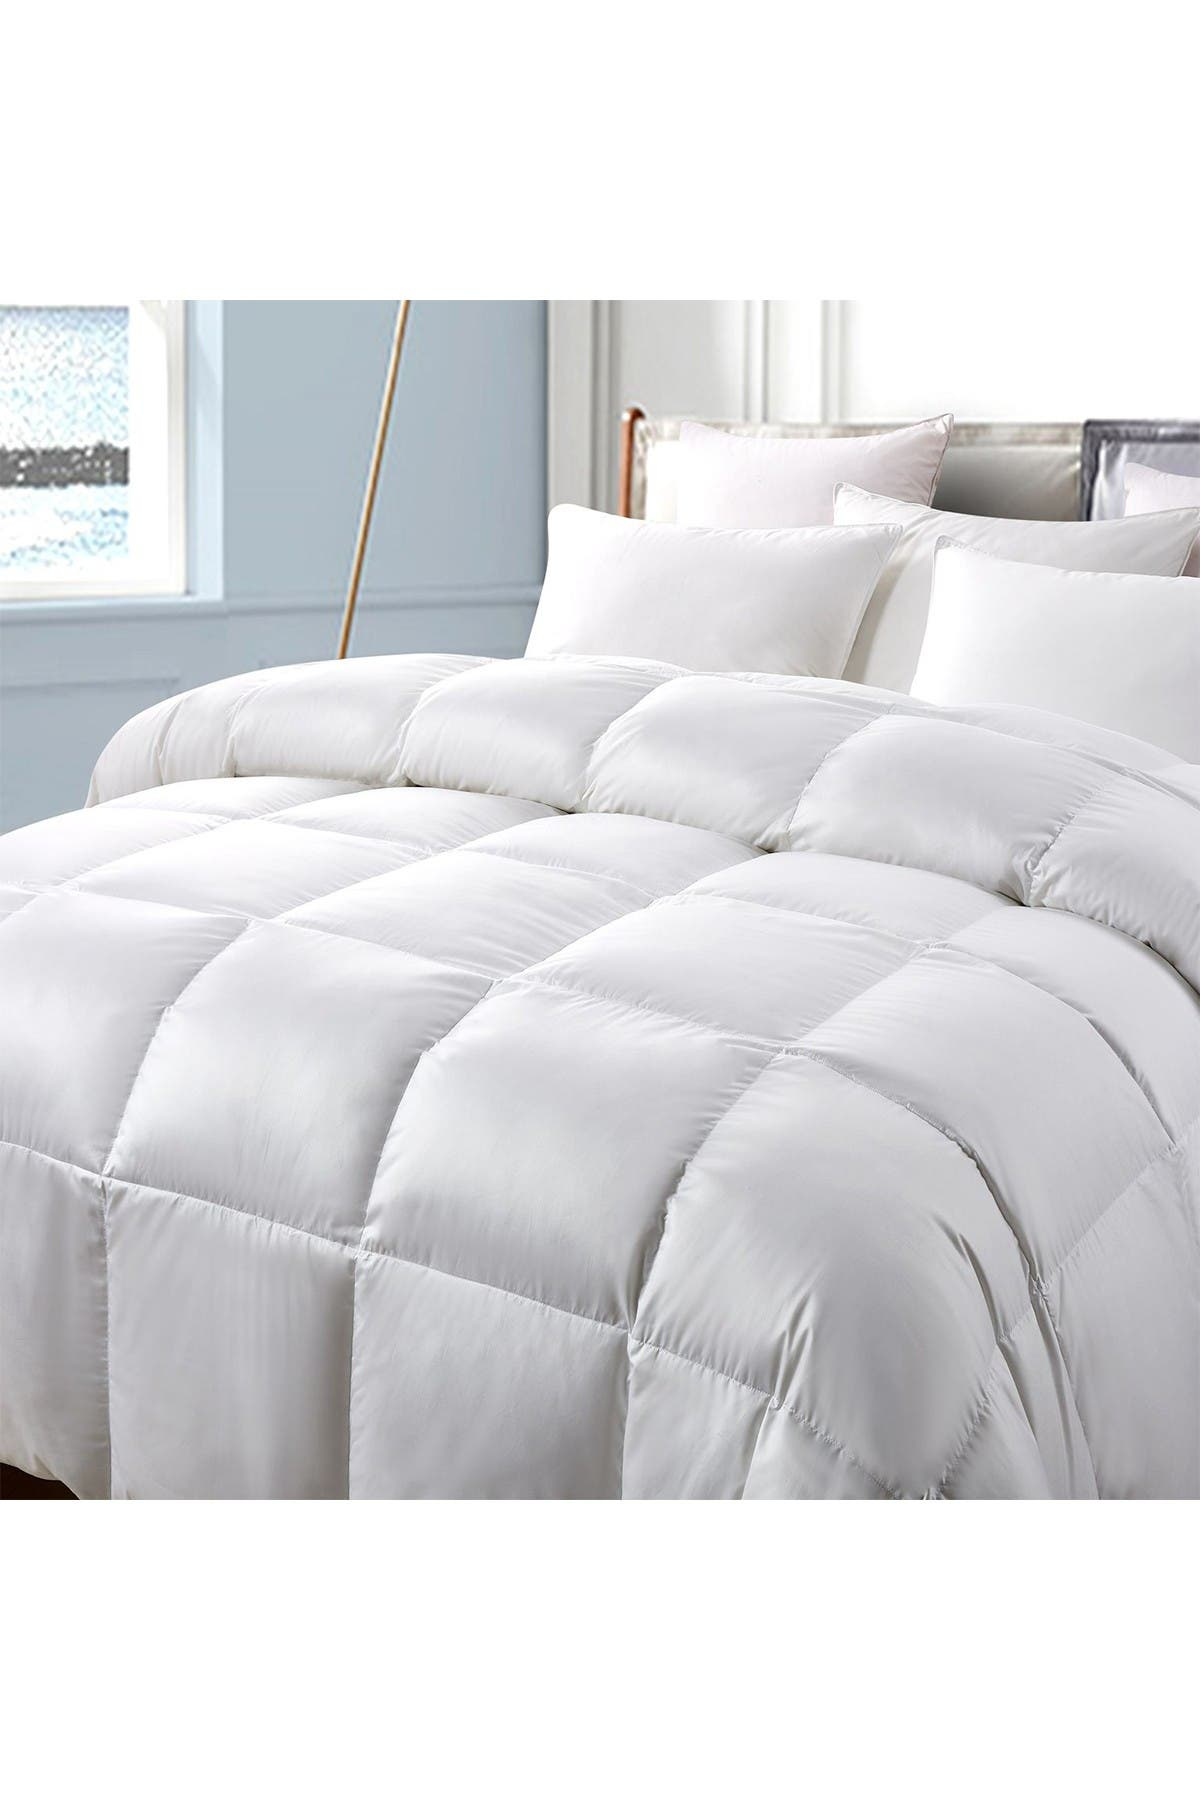 Image of Blue Ridge Home Fashions Serta 300TC Extra Warmth White Down & Feather Comforter - Twin - White